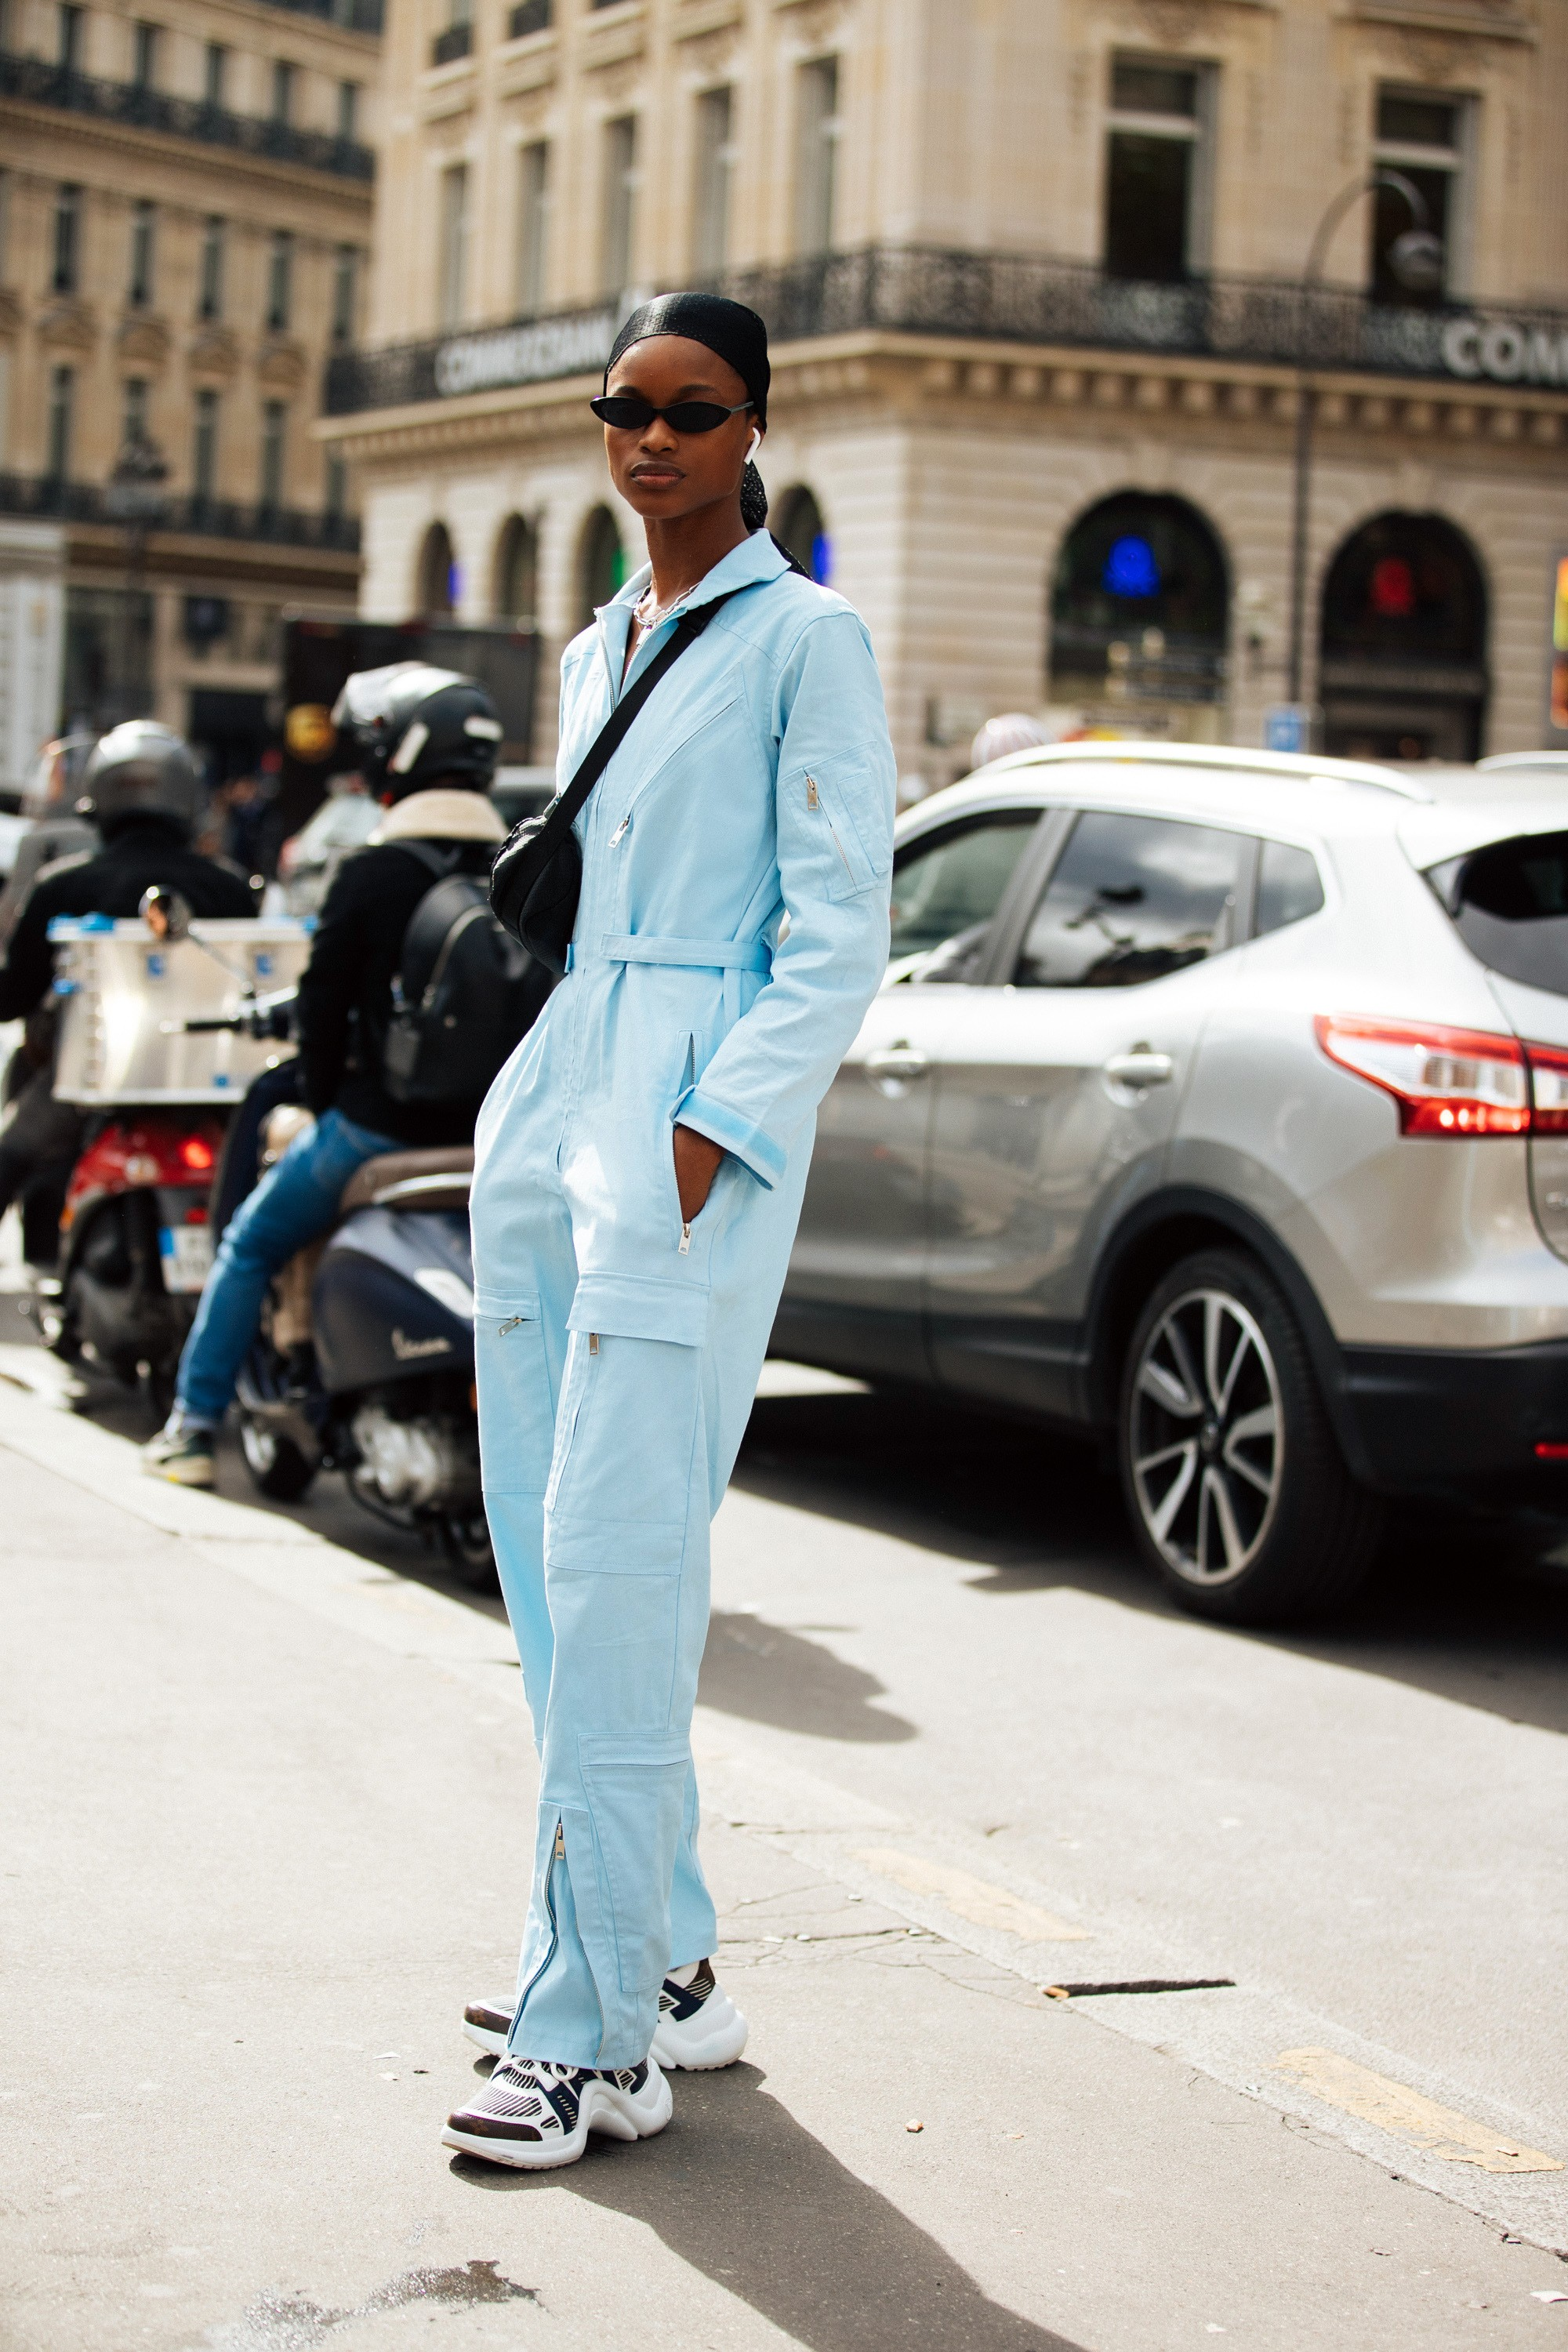 PARIS, FRANCE - SEPTEMBER 27: Model Mayowa Nicholas wears black skinny sunglasses, a black do-rag, baby blue jumpsuit, black bumbag, and white Louis Vuitton Archlight sneakers after the Balmain show during Paris Fashion Week Spring/Summer 2020 on Septembe (Foto: Getty Images)